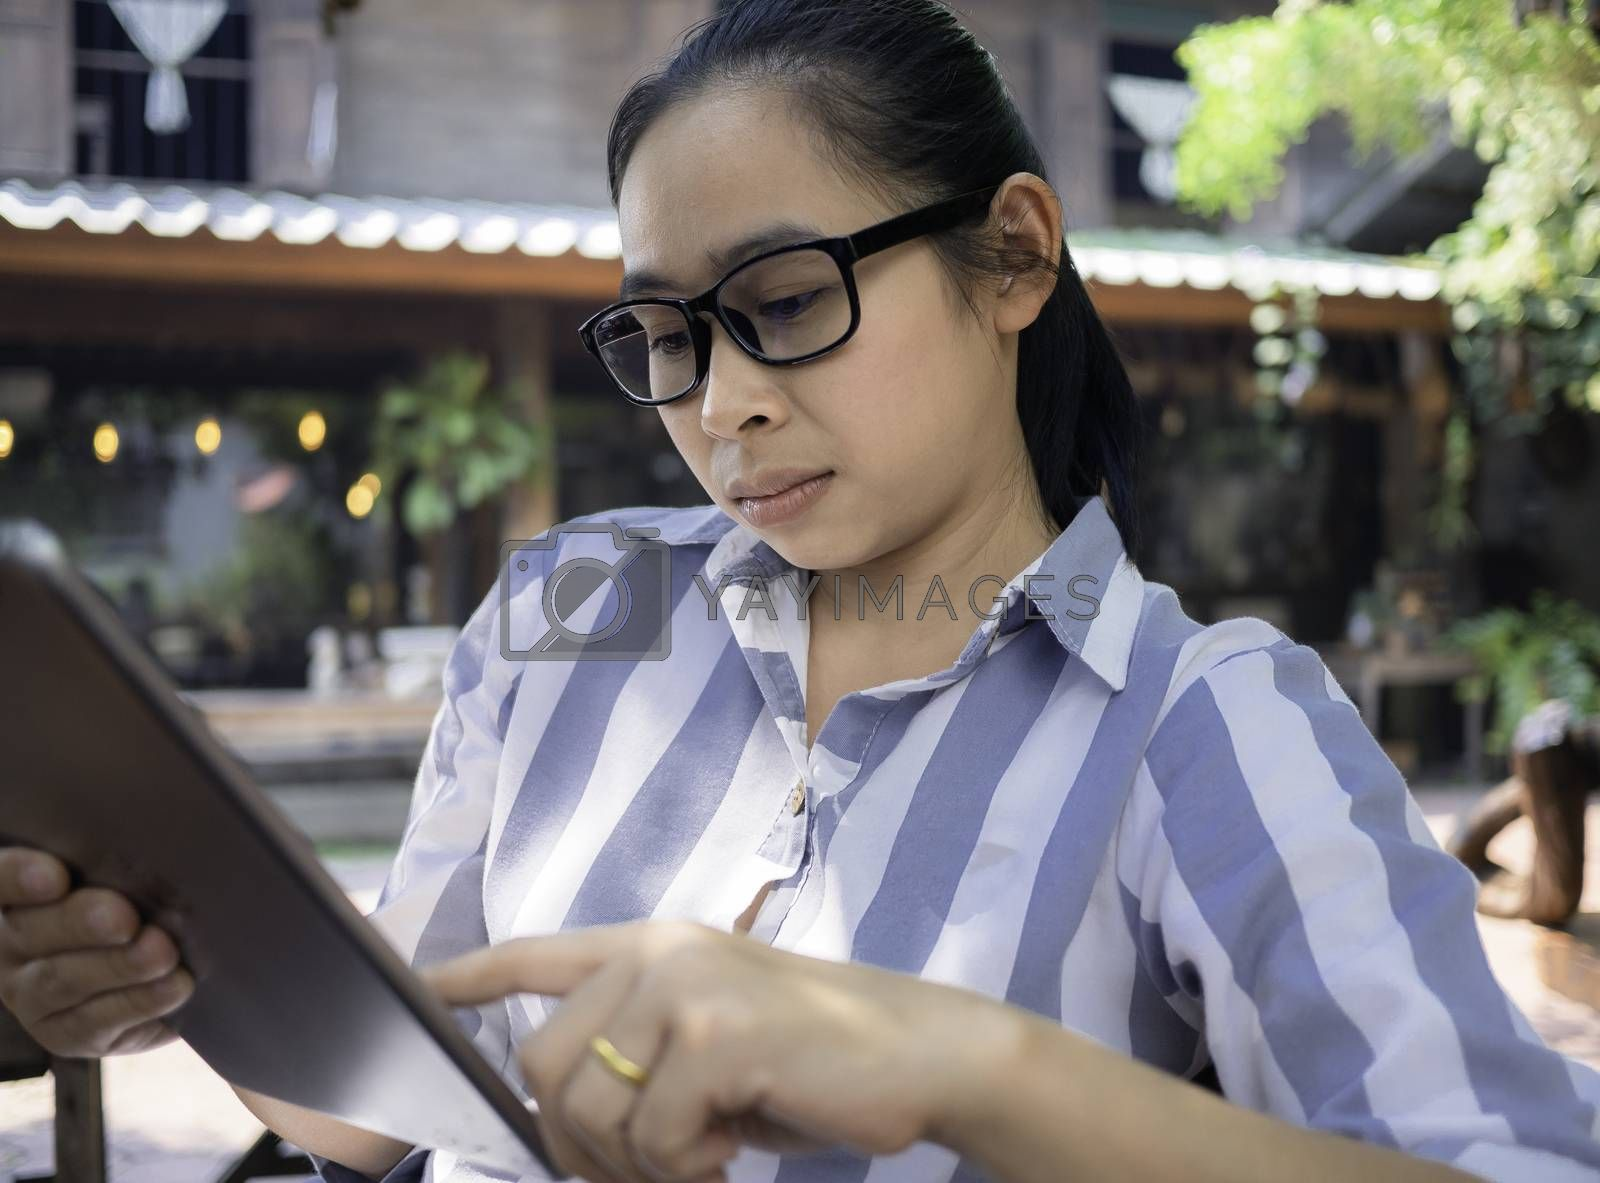 Confidenced business Asian young woman talking on the phone at coffee cafe, Serious face. by TEERASAK